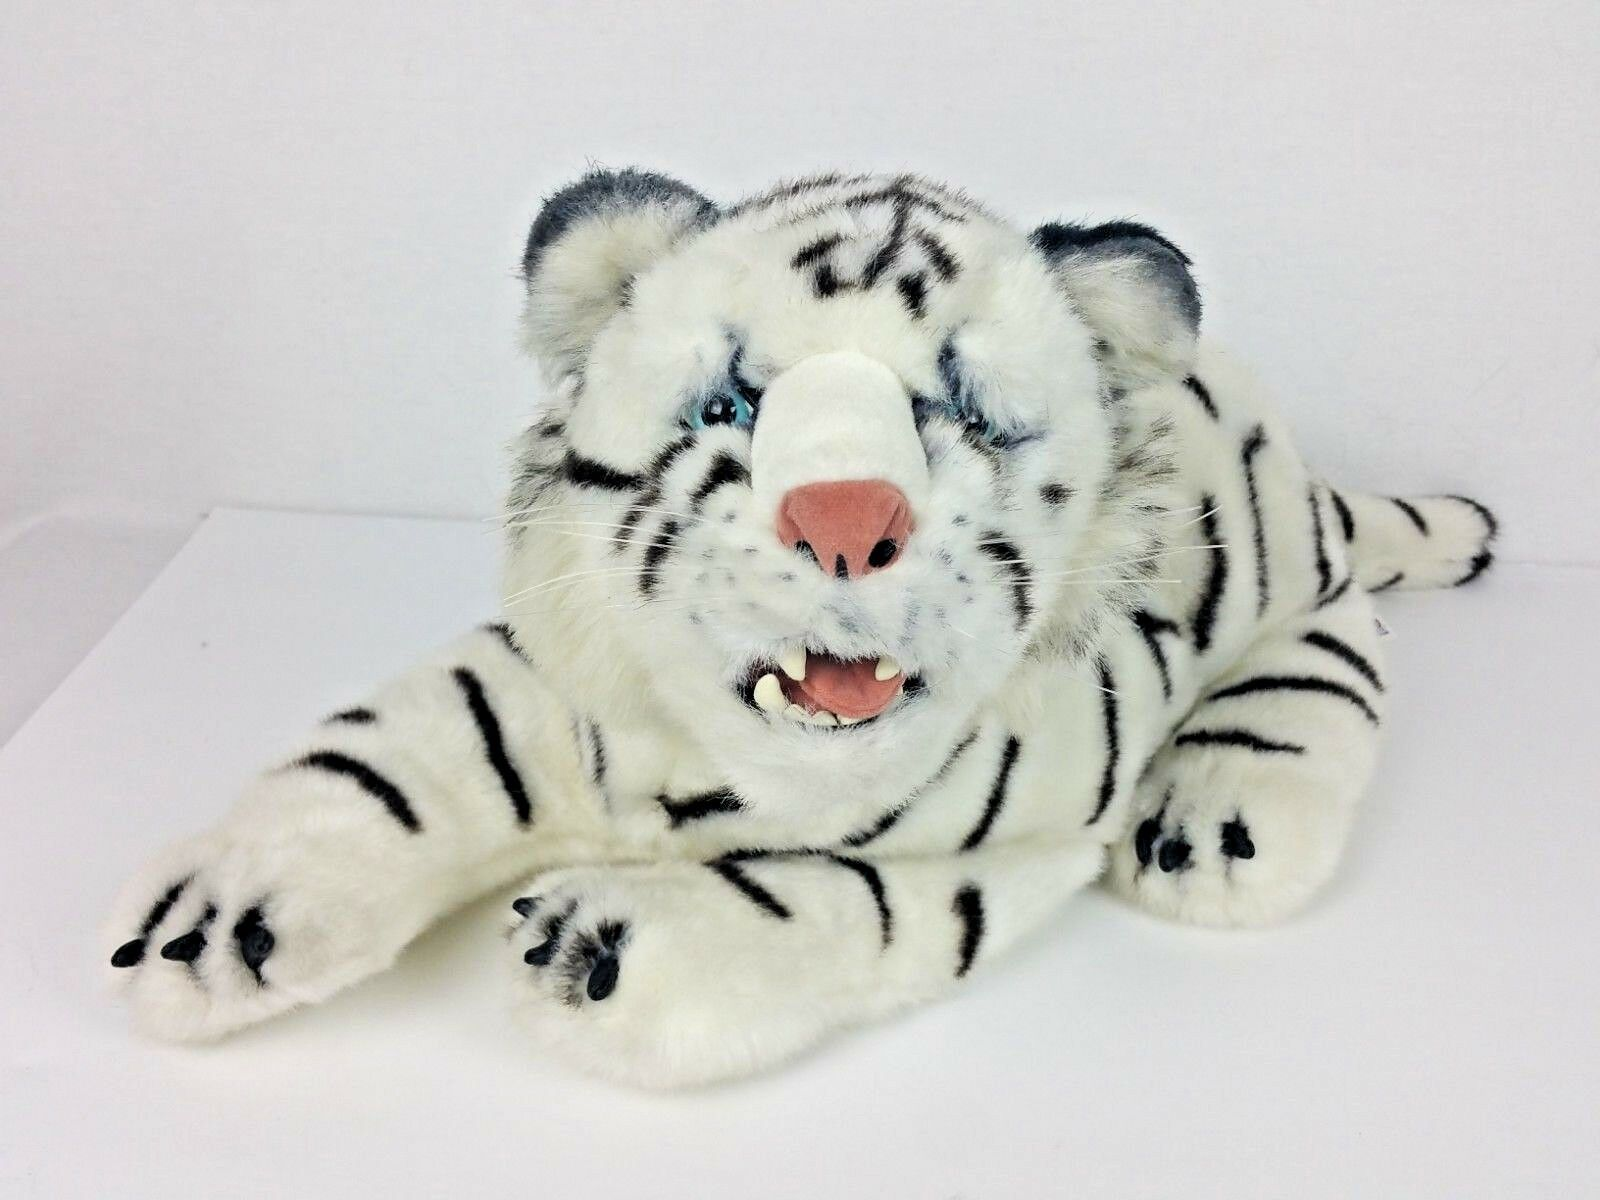 Discovery Channel XXL Large Plush Striped Animal Tiger Stuffed Realistic 2000